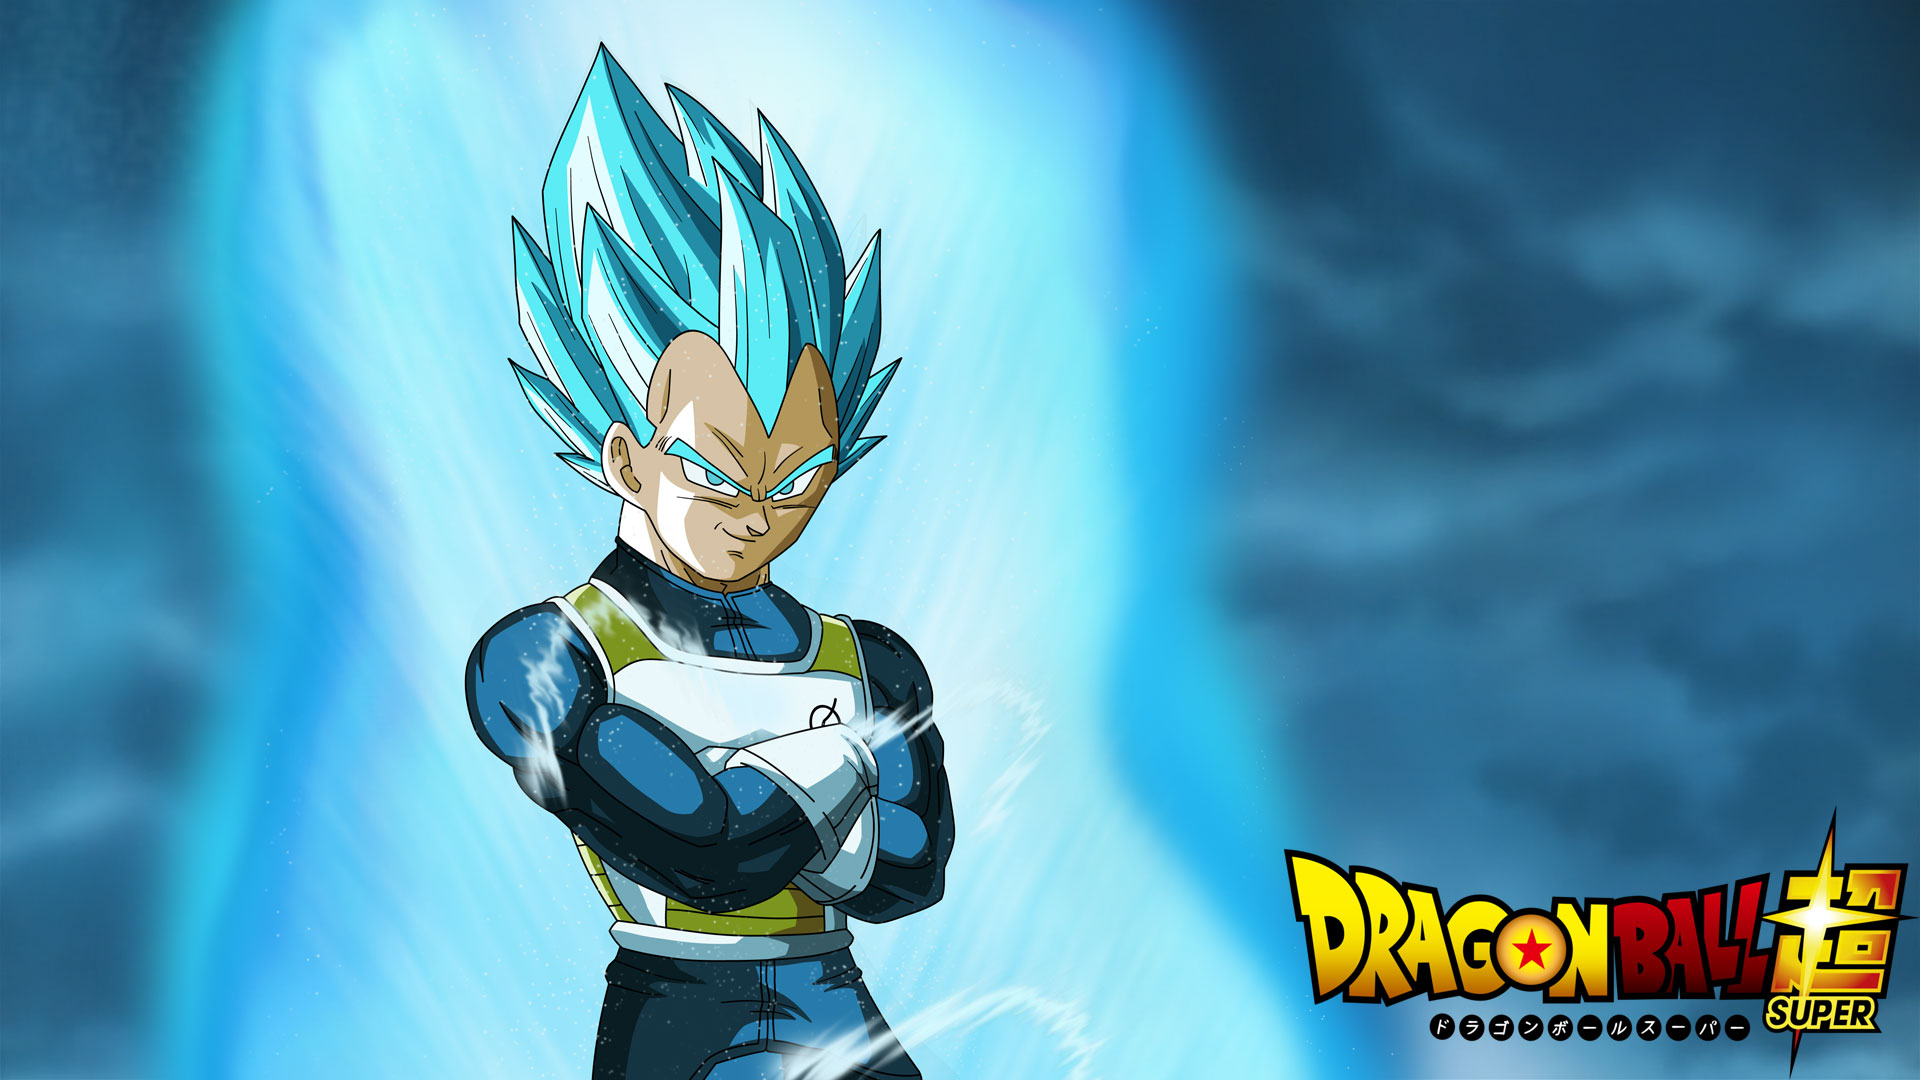 21 Vegeta Super Saiyan Blue 2 Wallpapers On Wallpapersafari